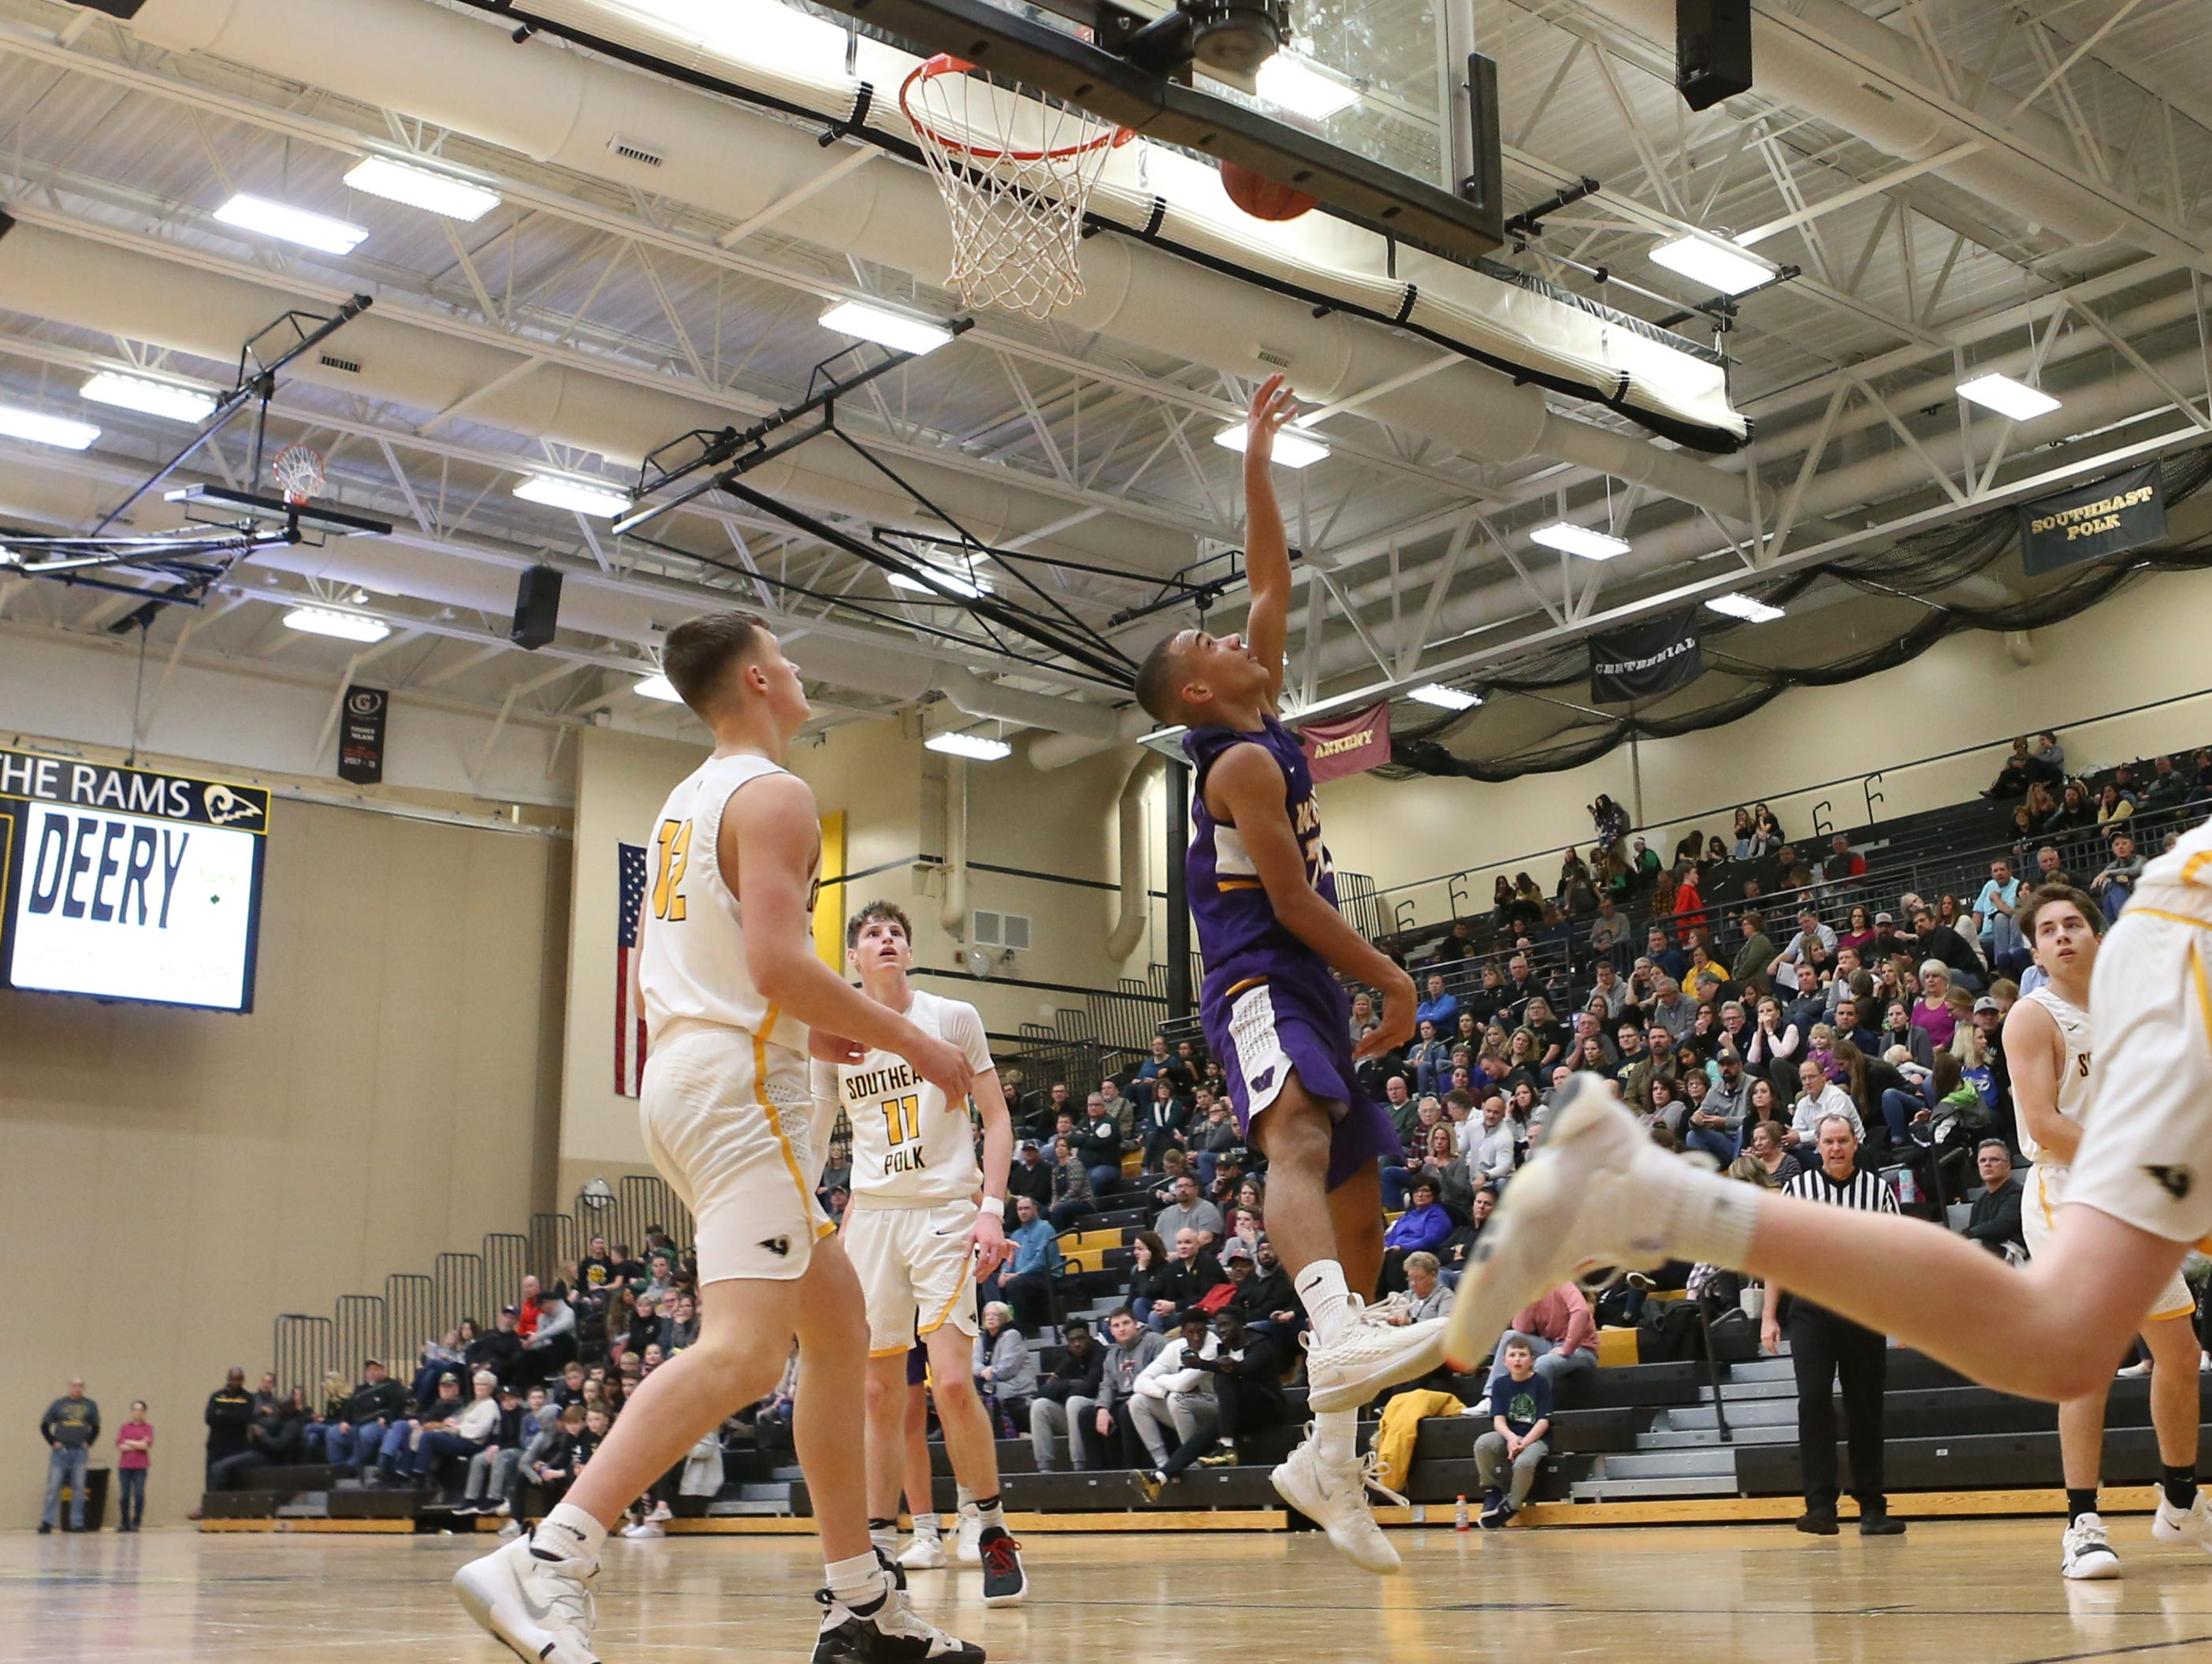 Waukee Warriors' Dante Jenkins (20) scores against the Southeast Polk Rams during a game on Feb. 1, 2019 at Southeast Polk High School.